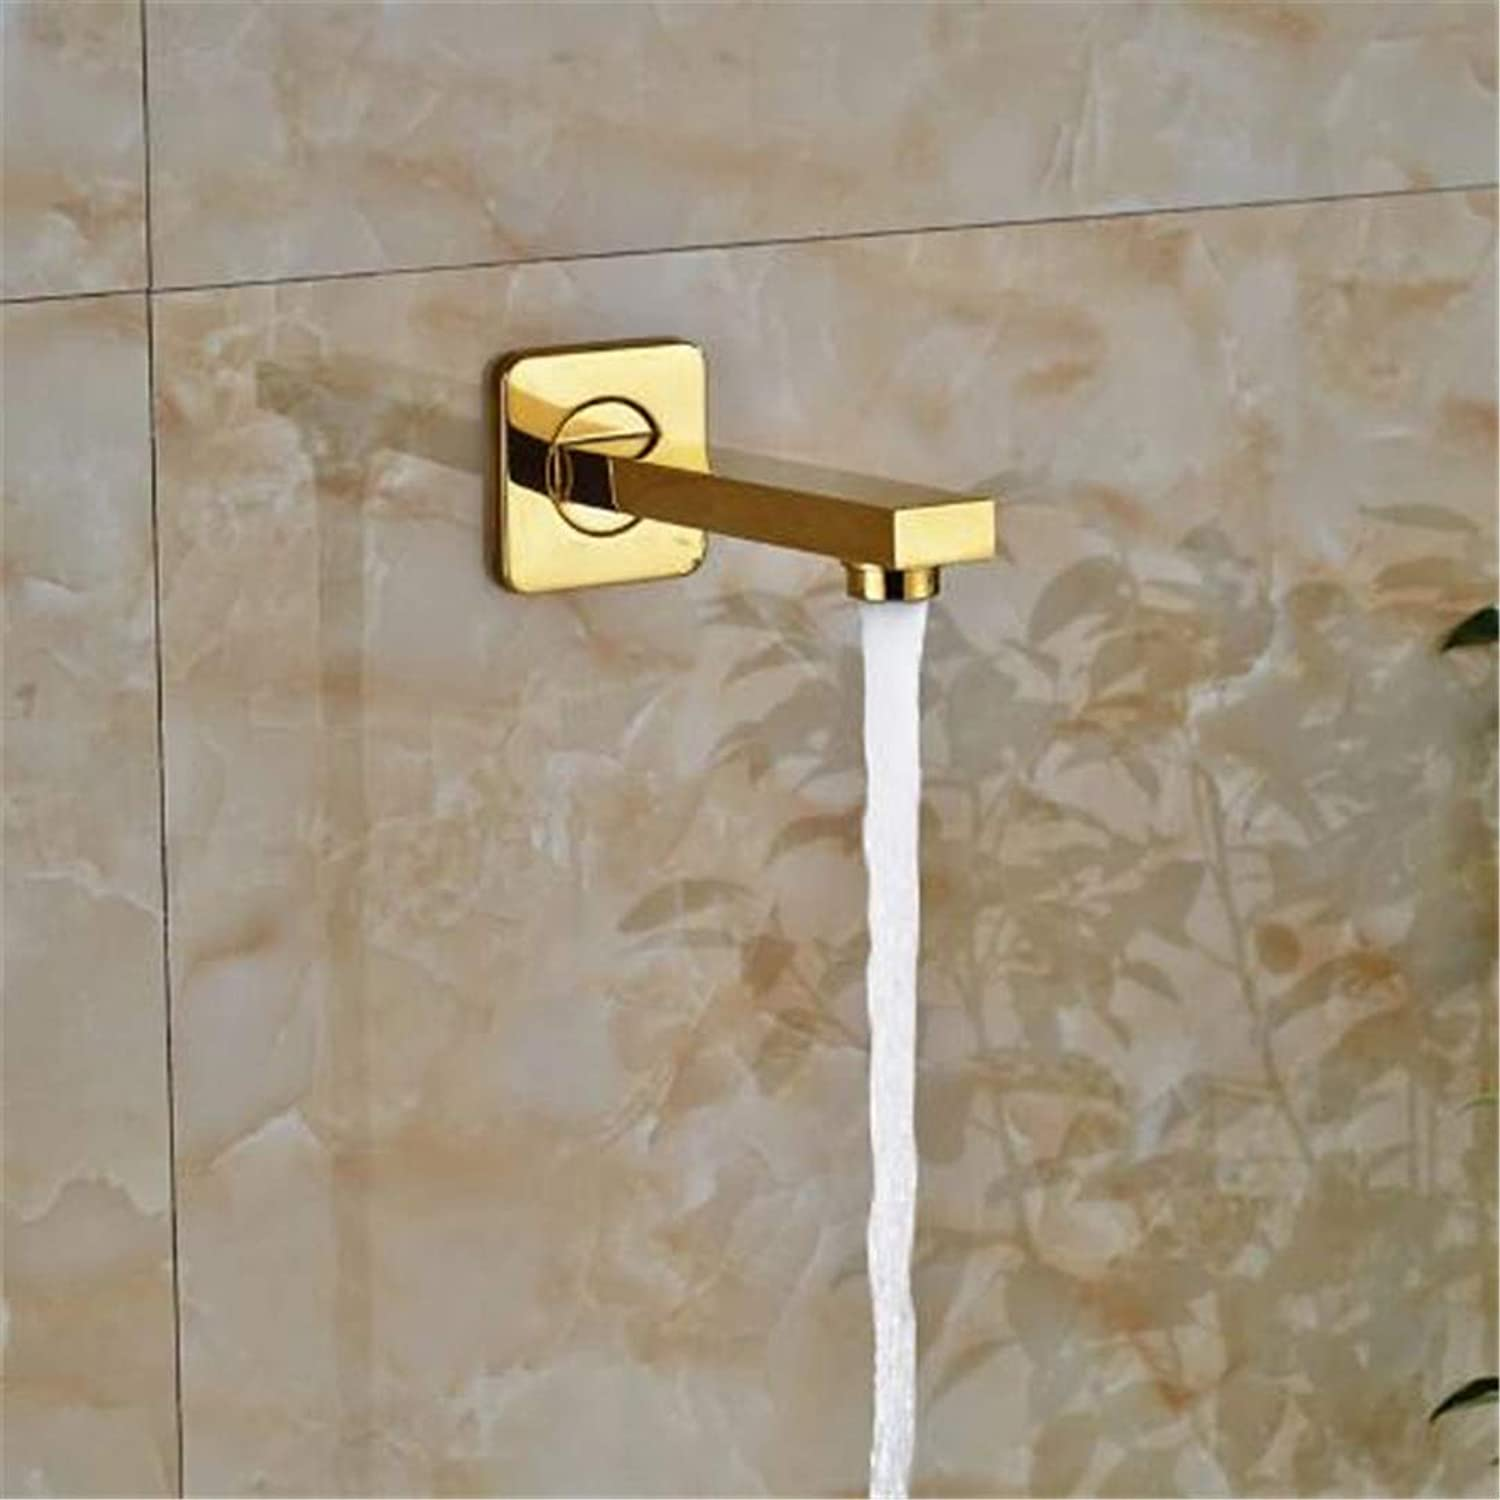 Oudan Faucet Basin Faucet Kitchen Faucet Bathroom Faucetgolden Brass Faucet Accessory Shower Faucet Tub Spout Tub Filler (color   -, Size   -)